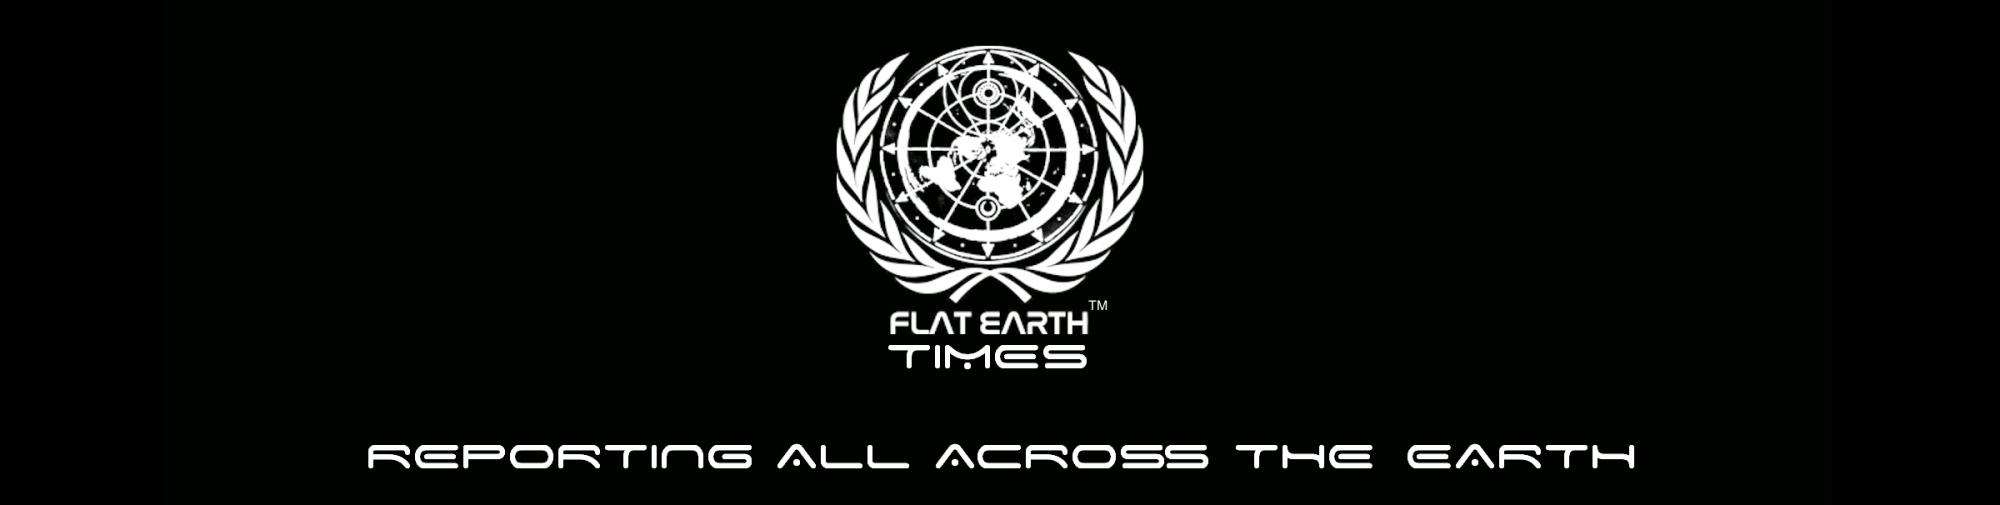 The Flat Earth Times